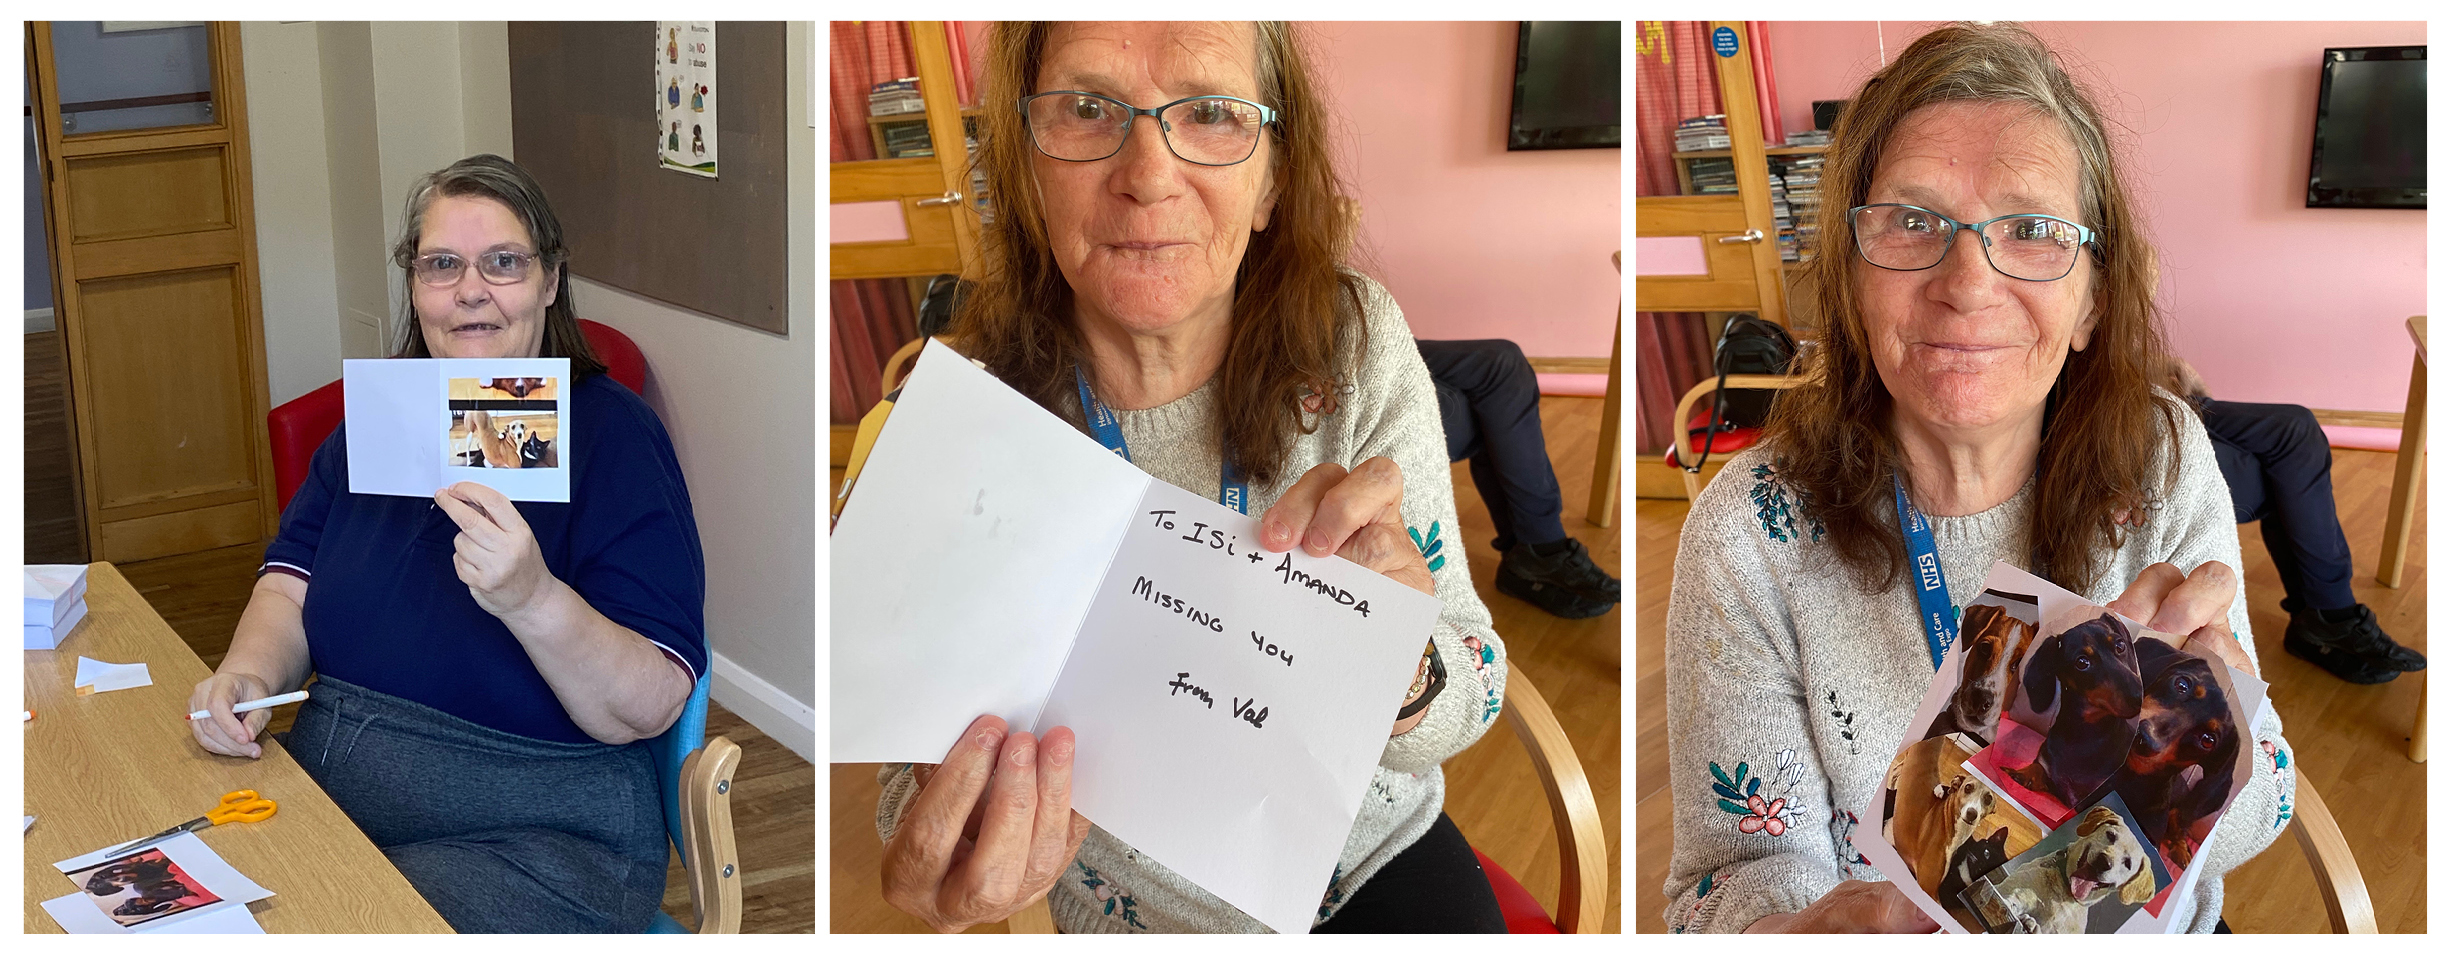 The After Party - care home postcard activity montage